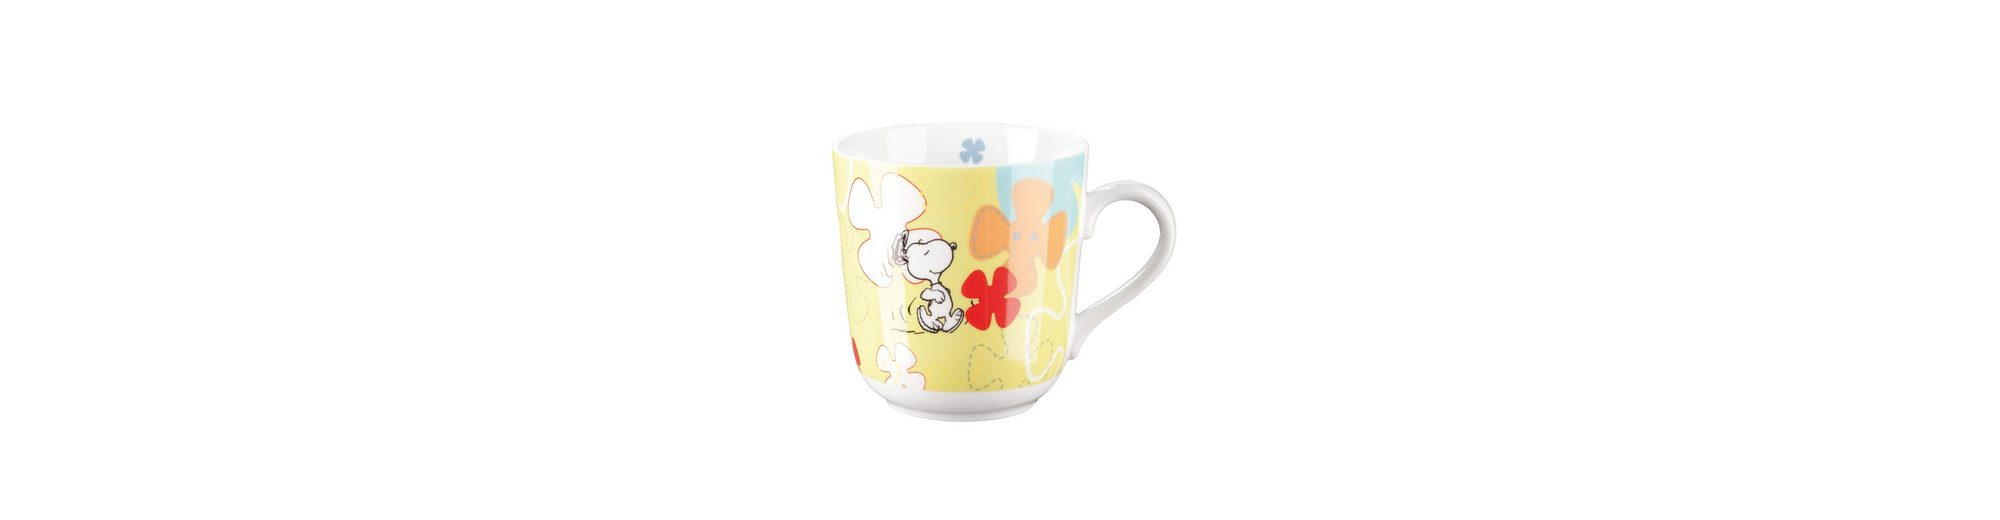 United Labels Tasse, »Peanuts, Flowers«